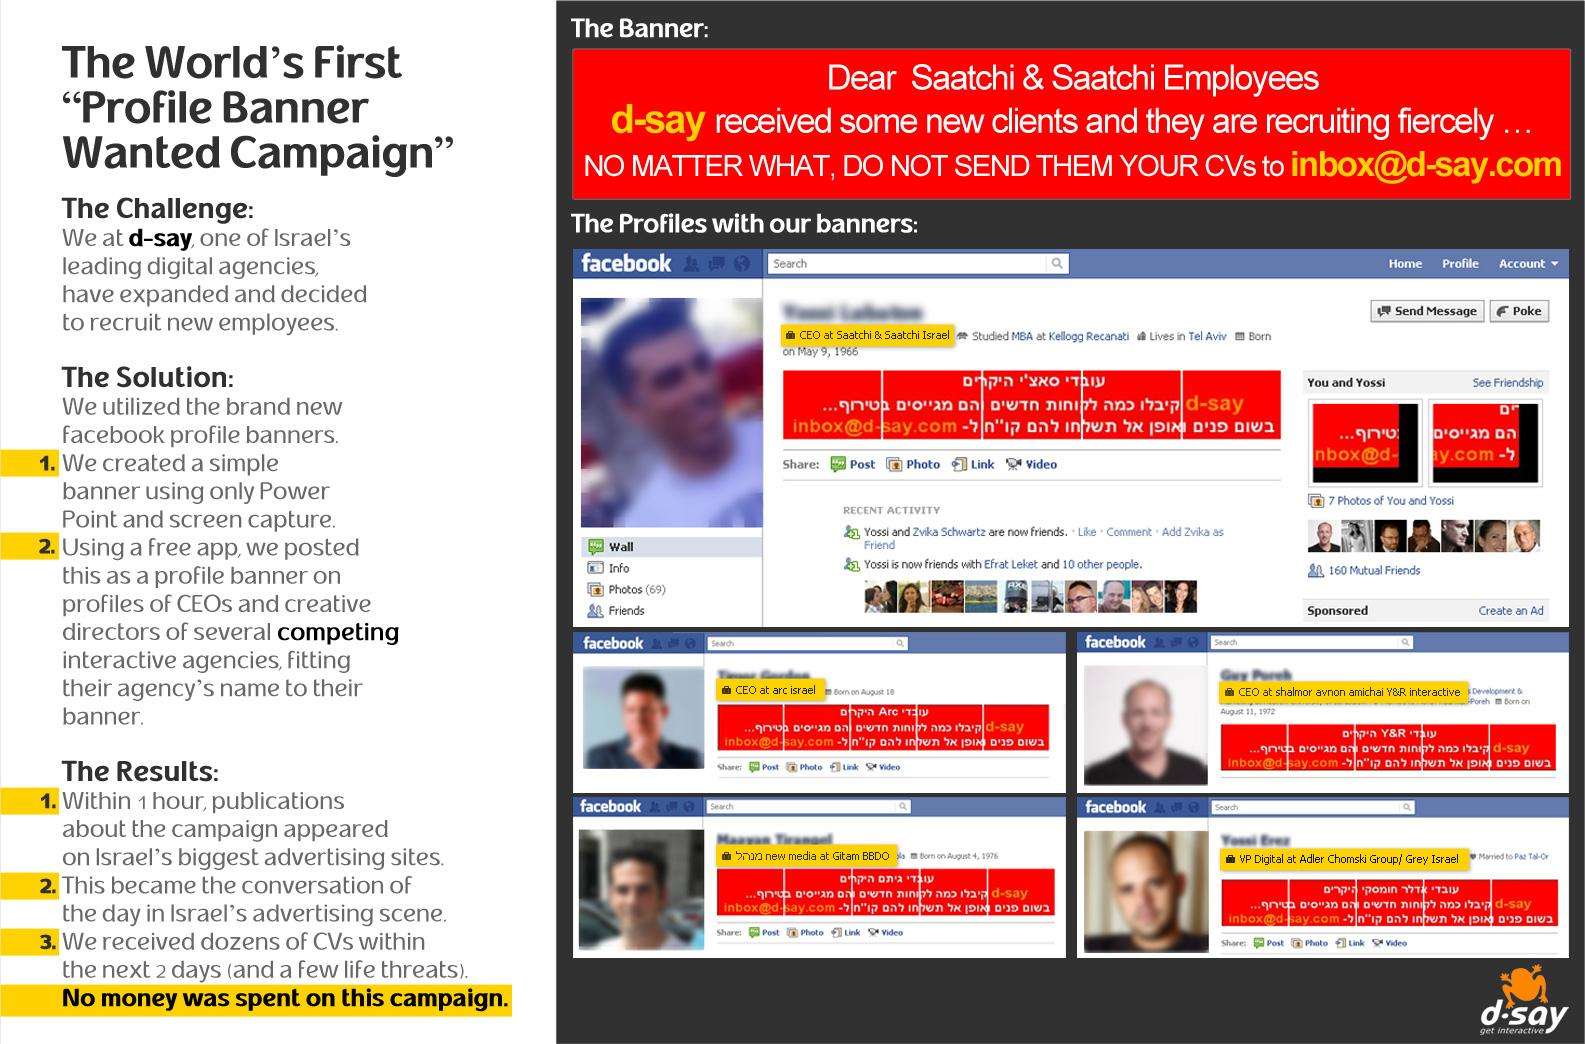 D-Say Digital Ad -  The World's First Profile Banner Wanted Campaign